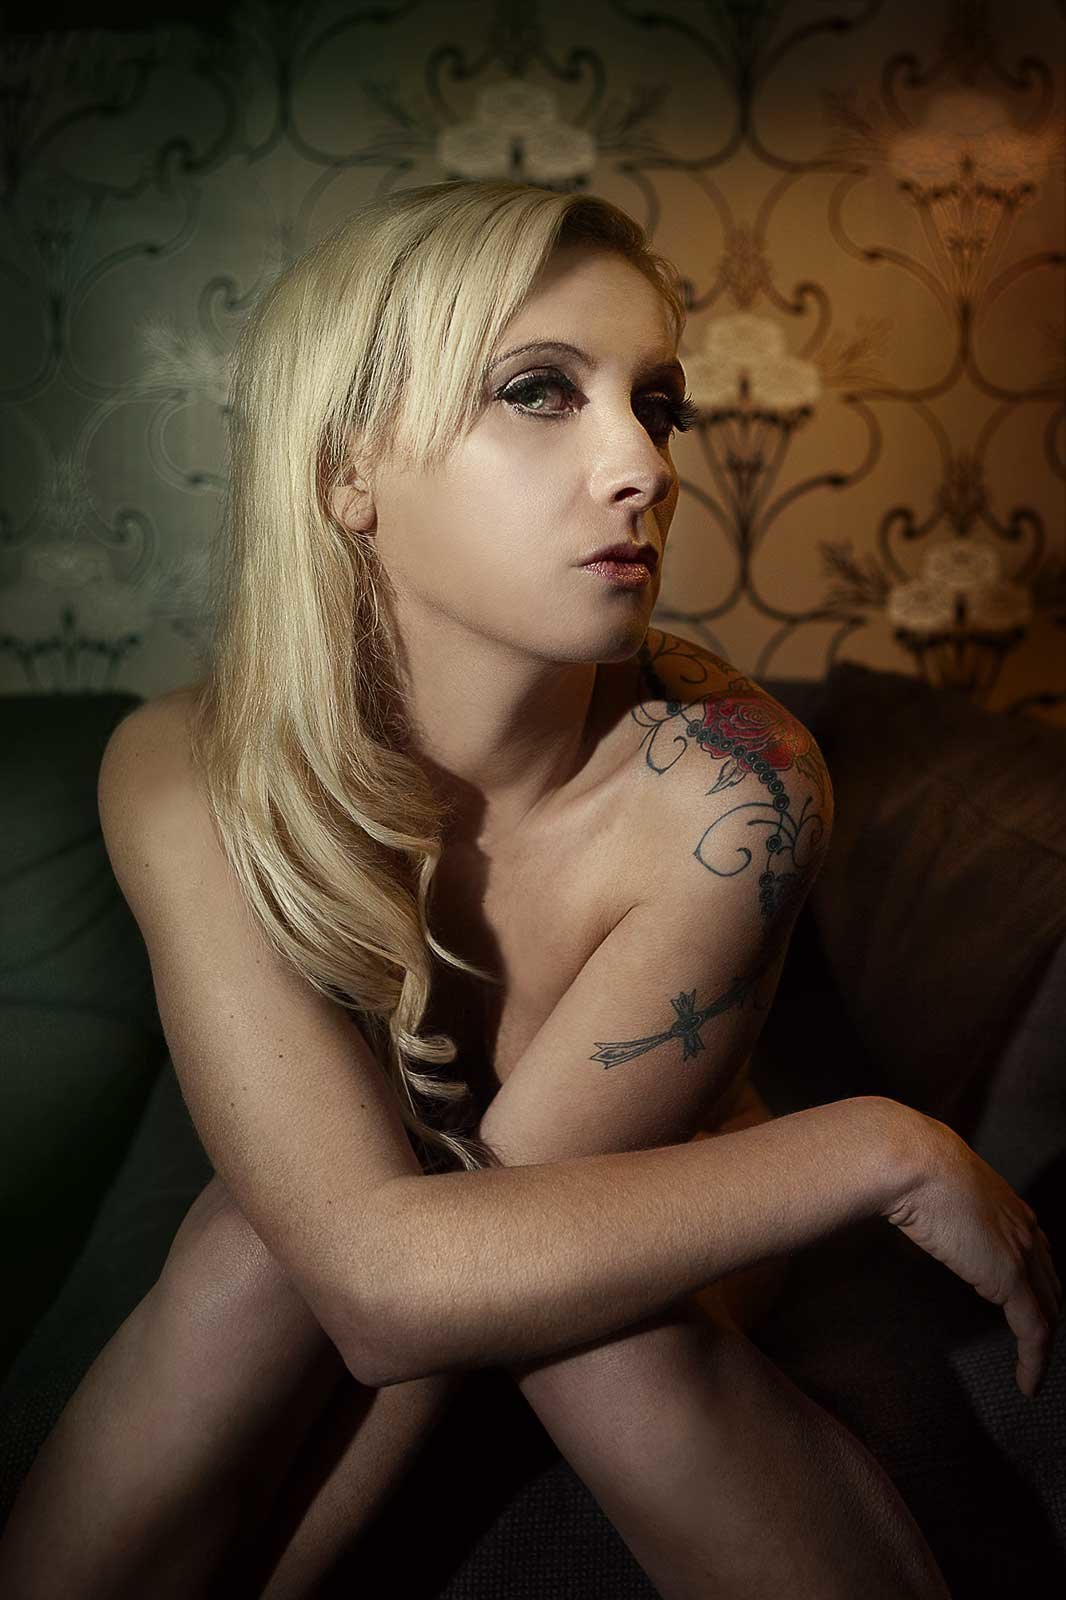 Tattoo-Girl-Portrait-Jan13-0060-edit